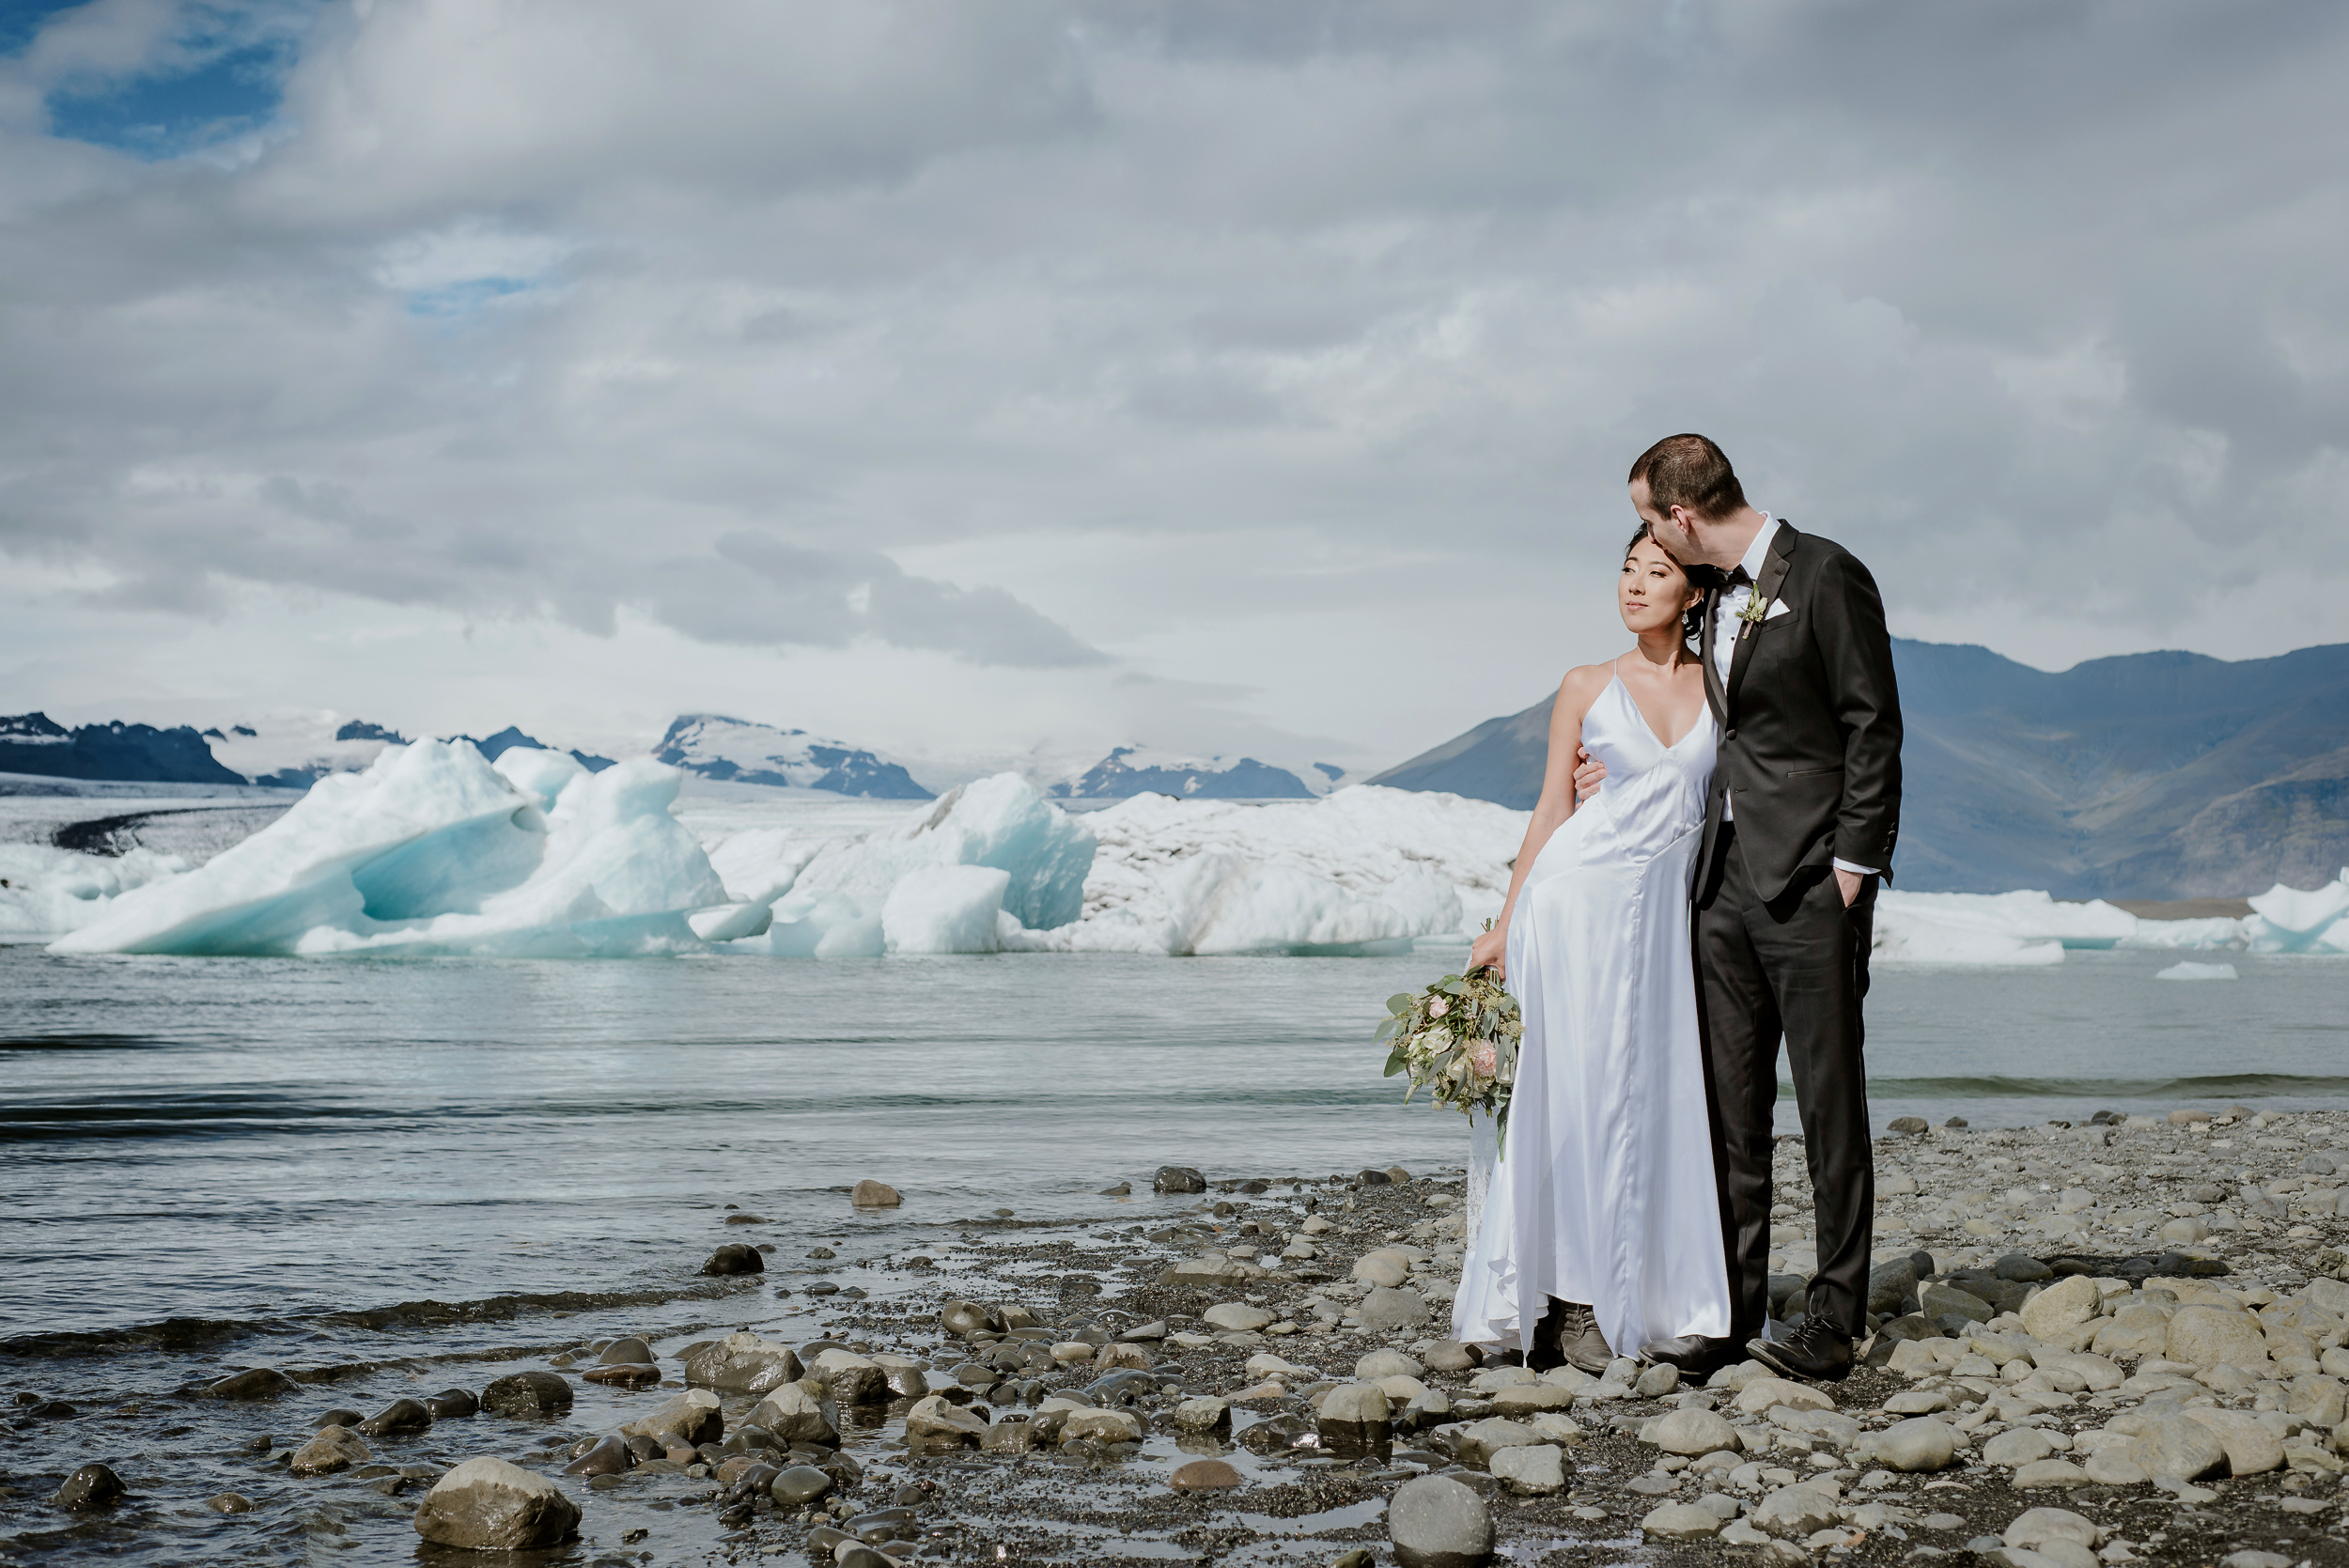 01-destination-wedding-iceland-engagement-session-vivianchen-070.jpg